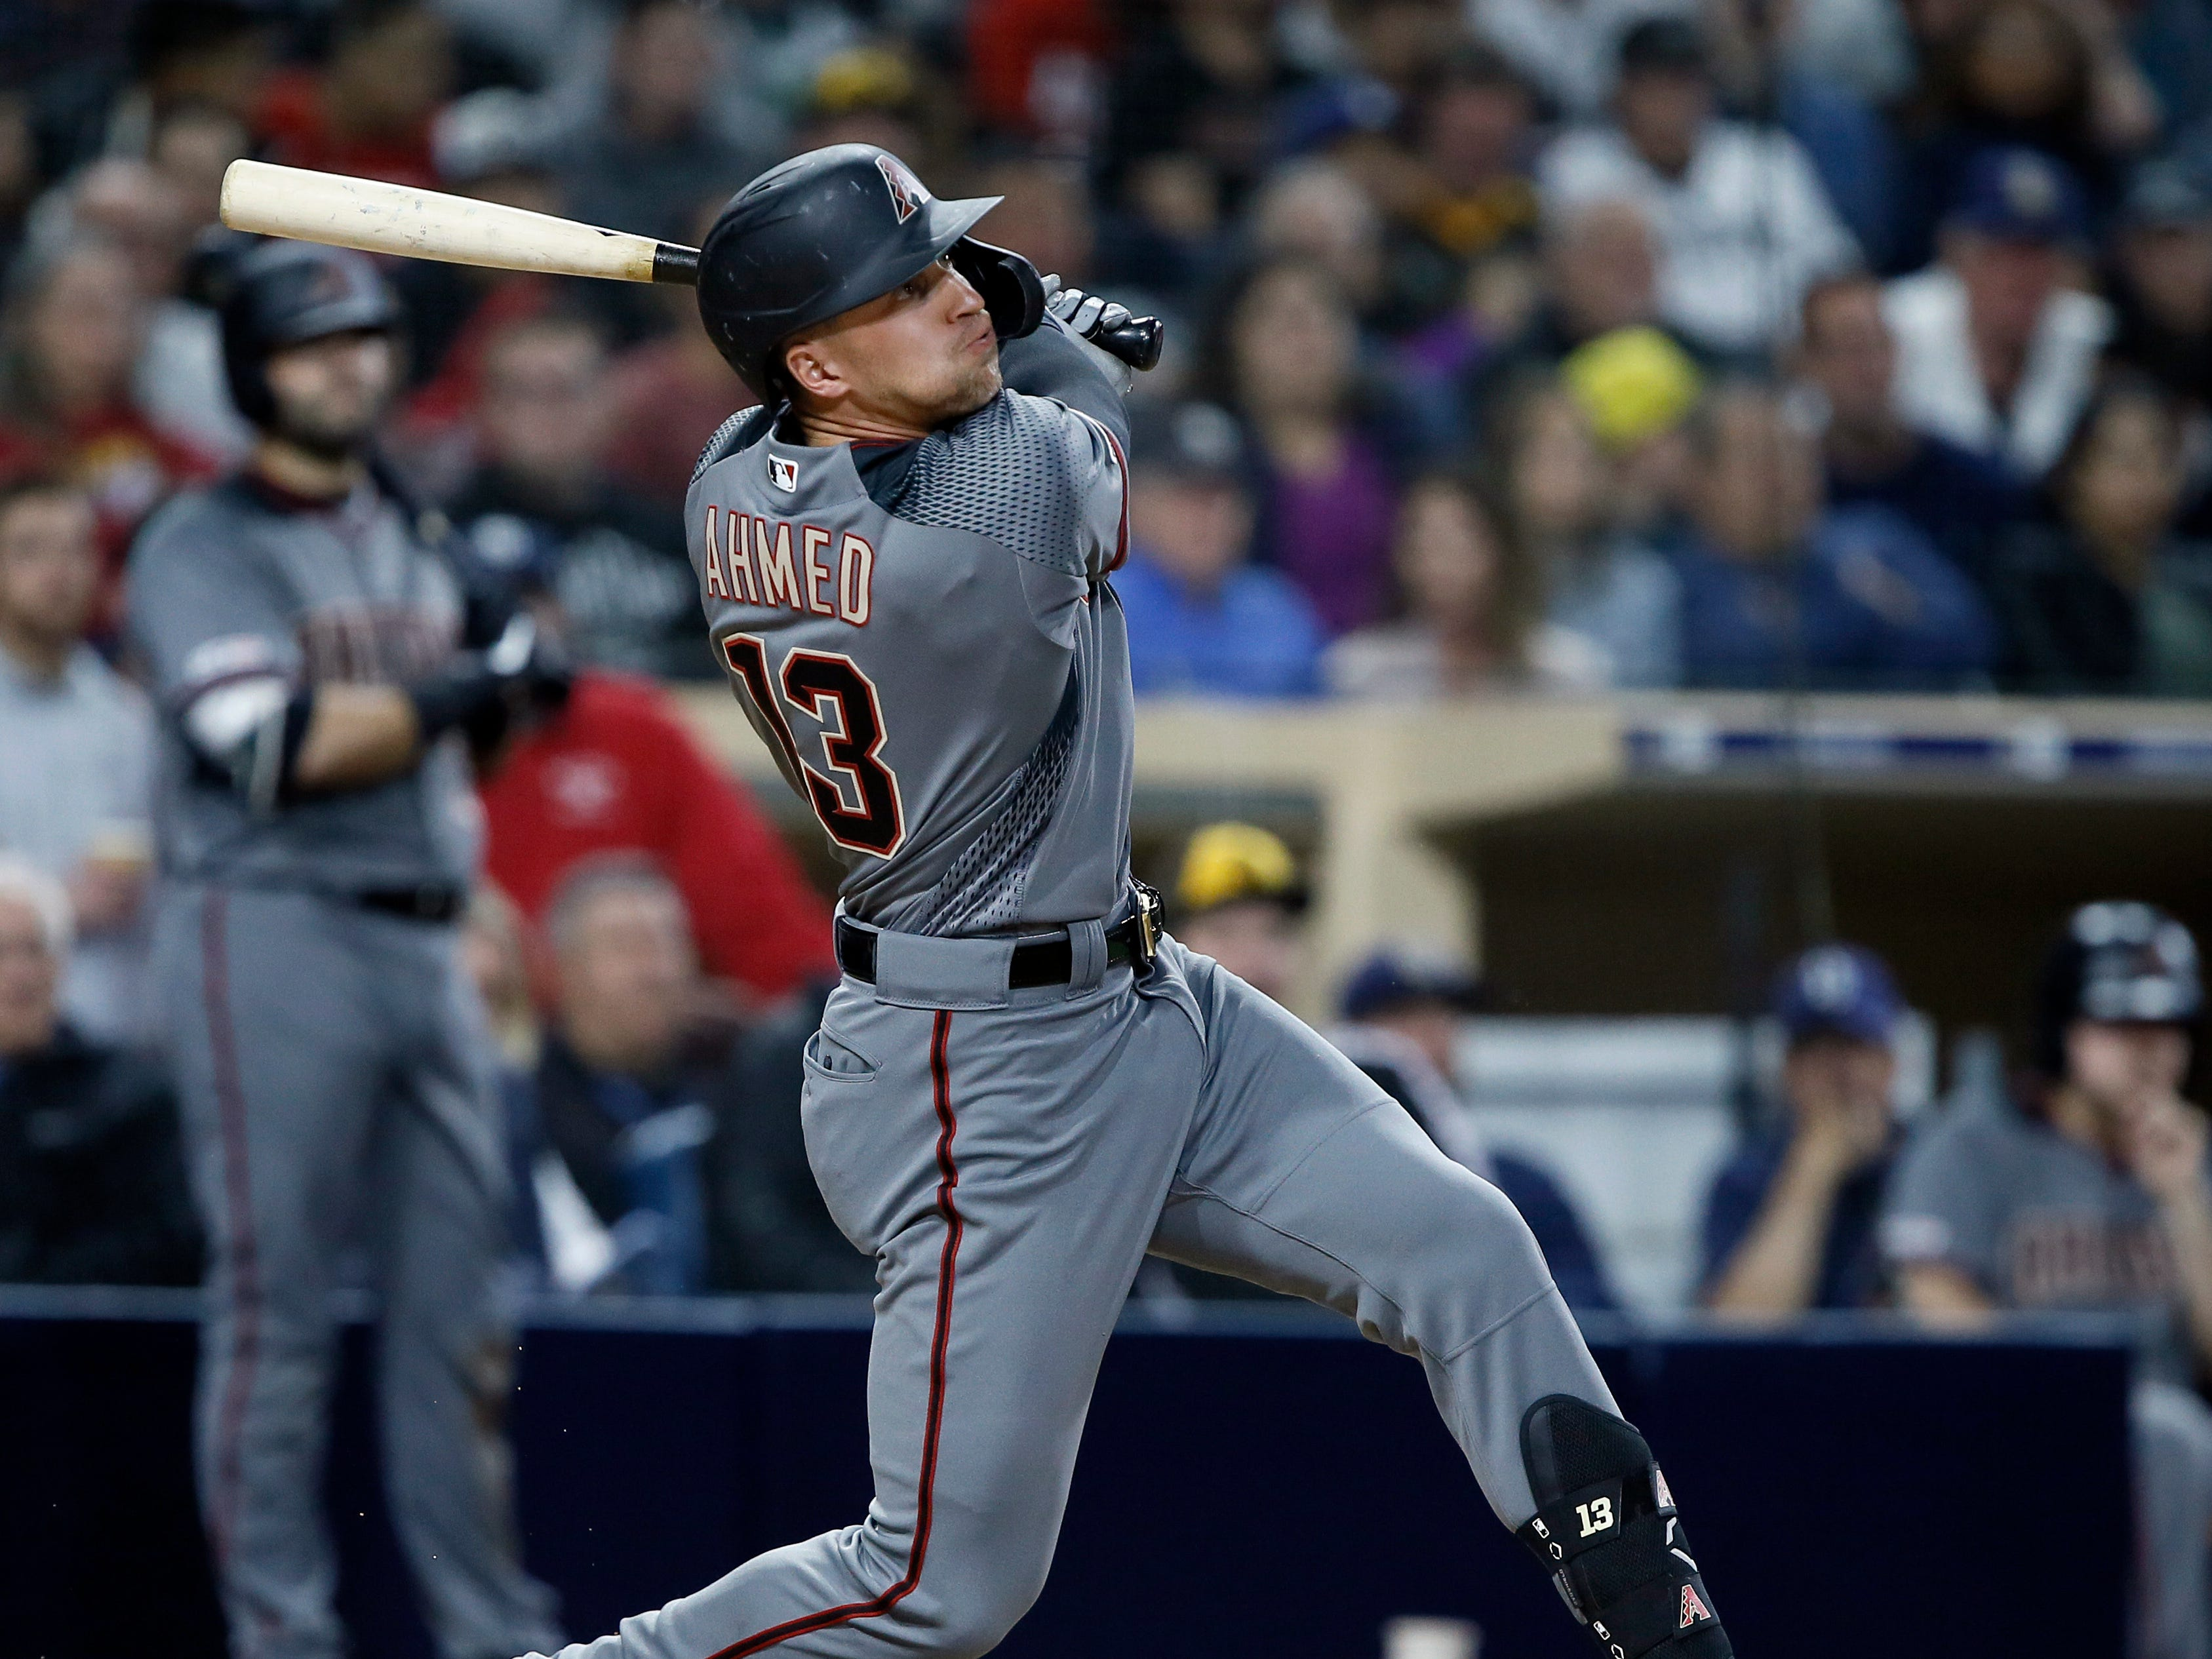 Arizona Diamondbacks' Nick Ahmed hits an RBI-sacrifice fly to right field to score David Peralta during the third inning of a baseball game against the San Diego Padres in San Diego, Monday, April 1, 2019. (AP Photo/Alex Gallardo)